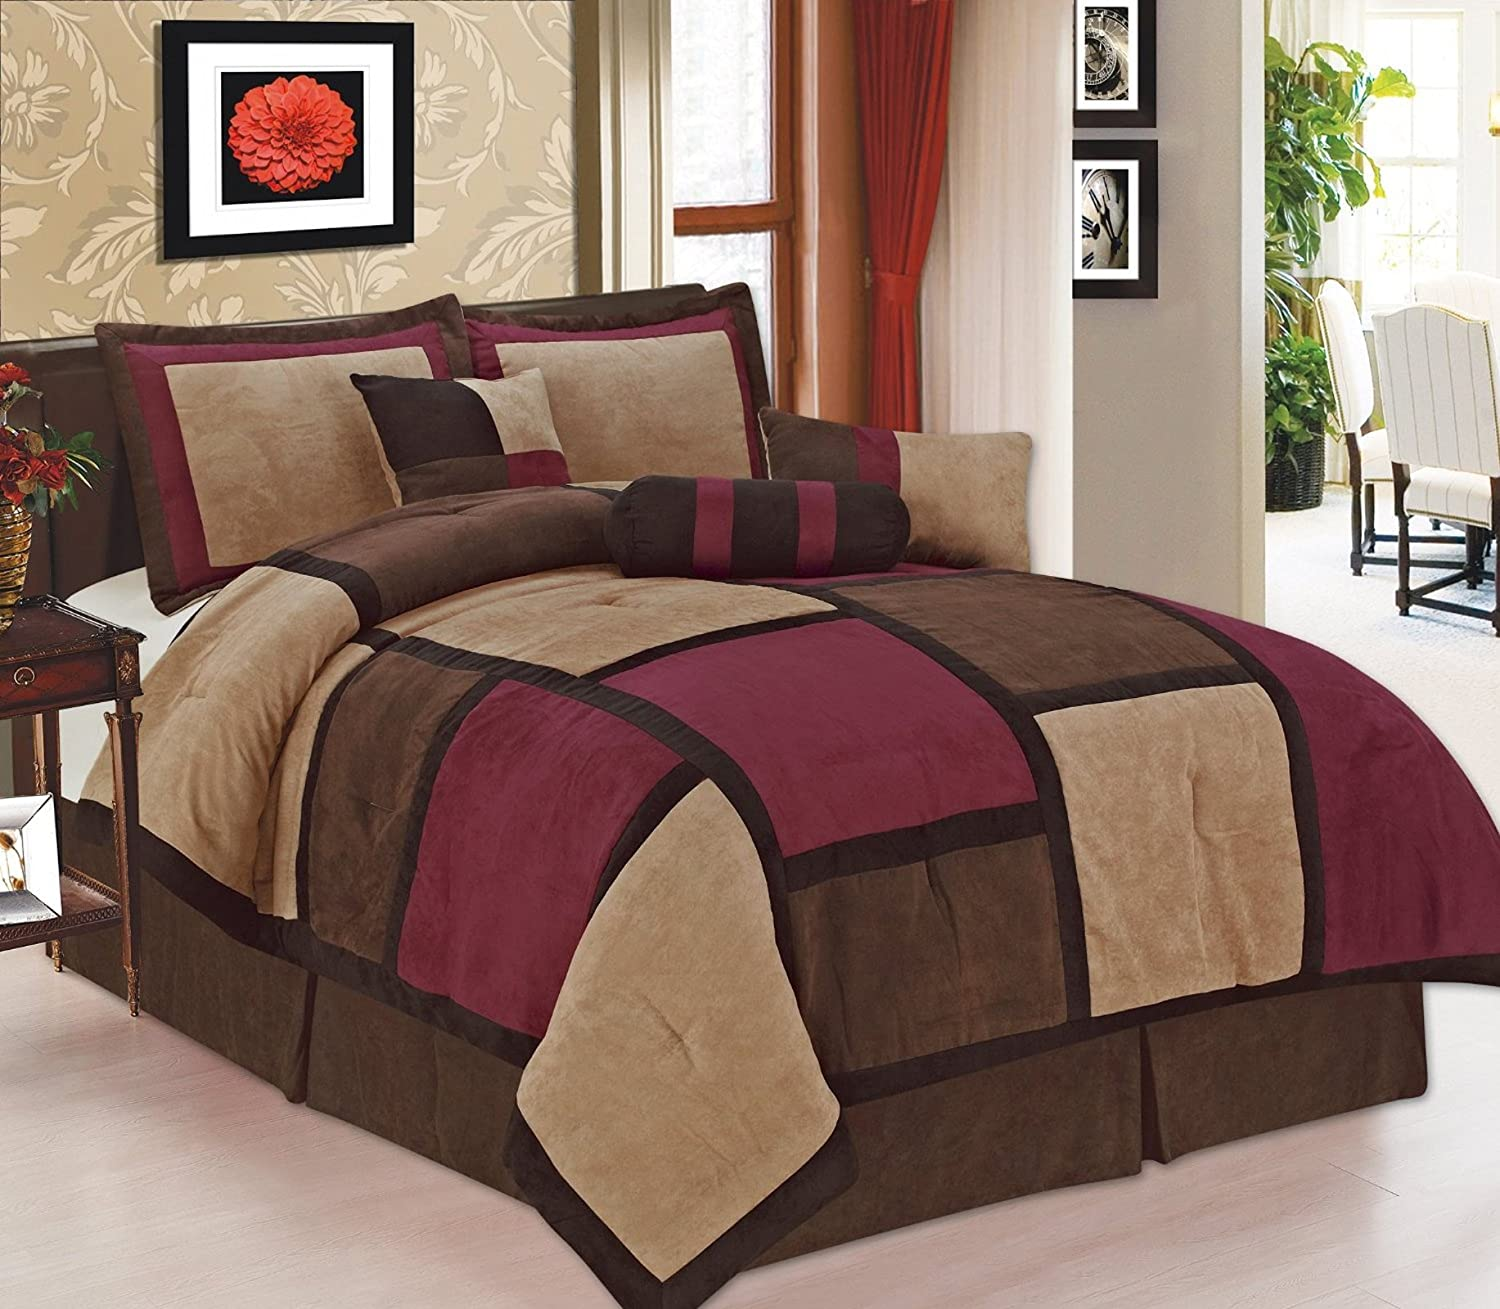 mini colormate wid comforter set sets prod reversible qlt warm hei p black red